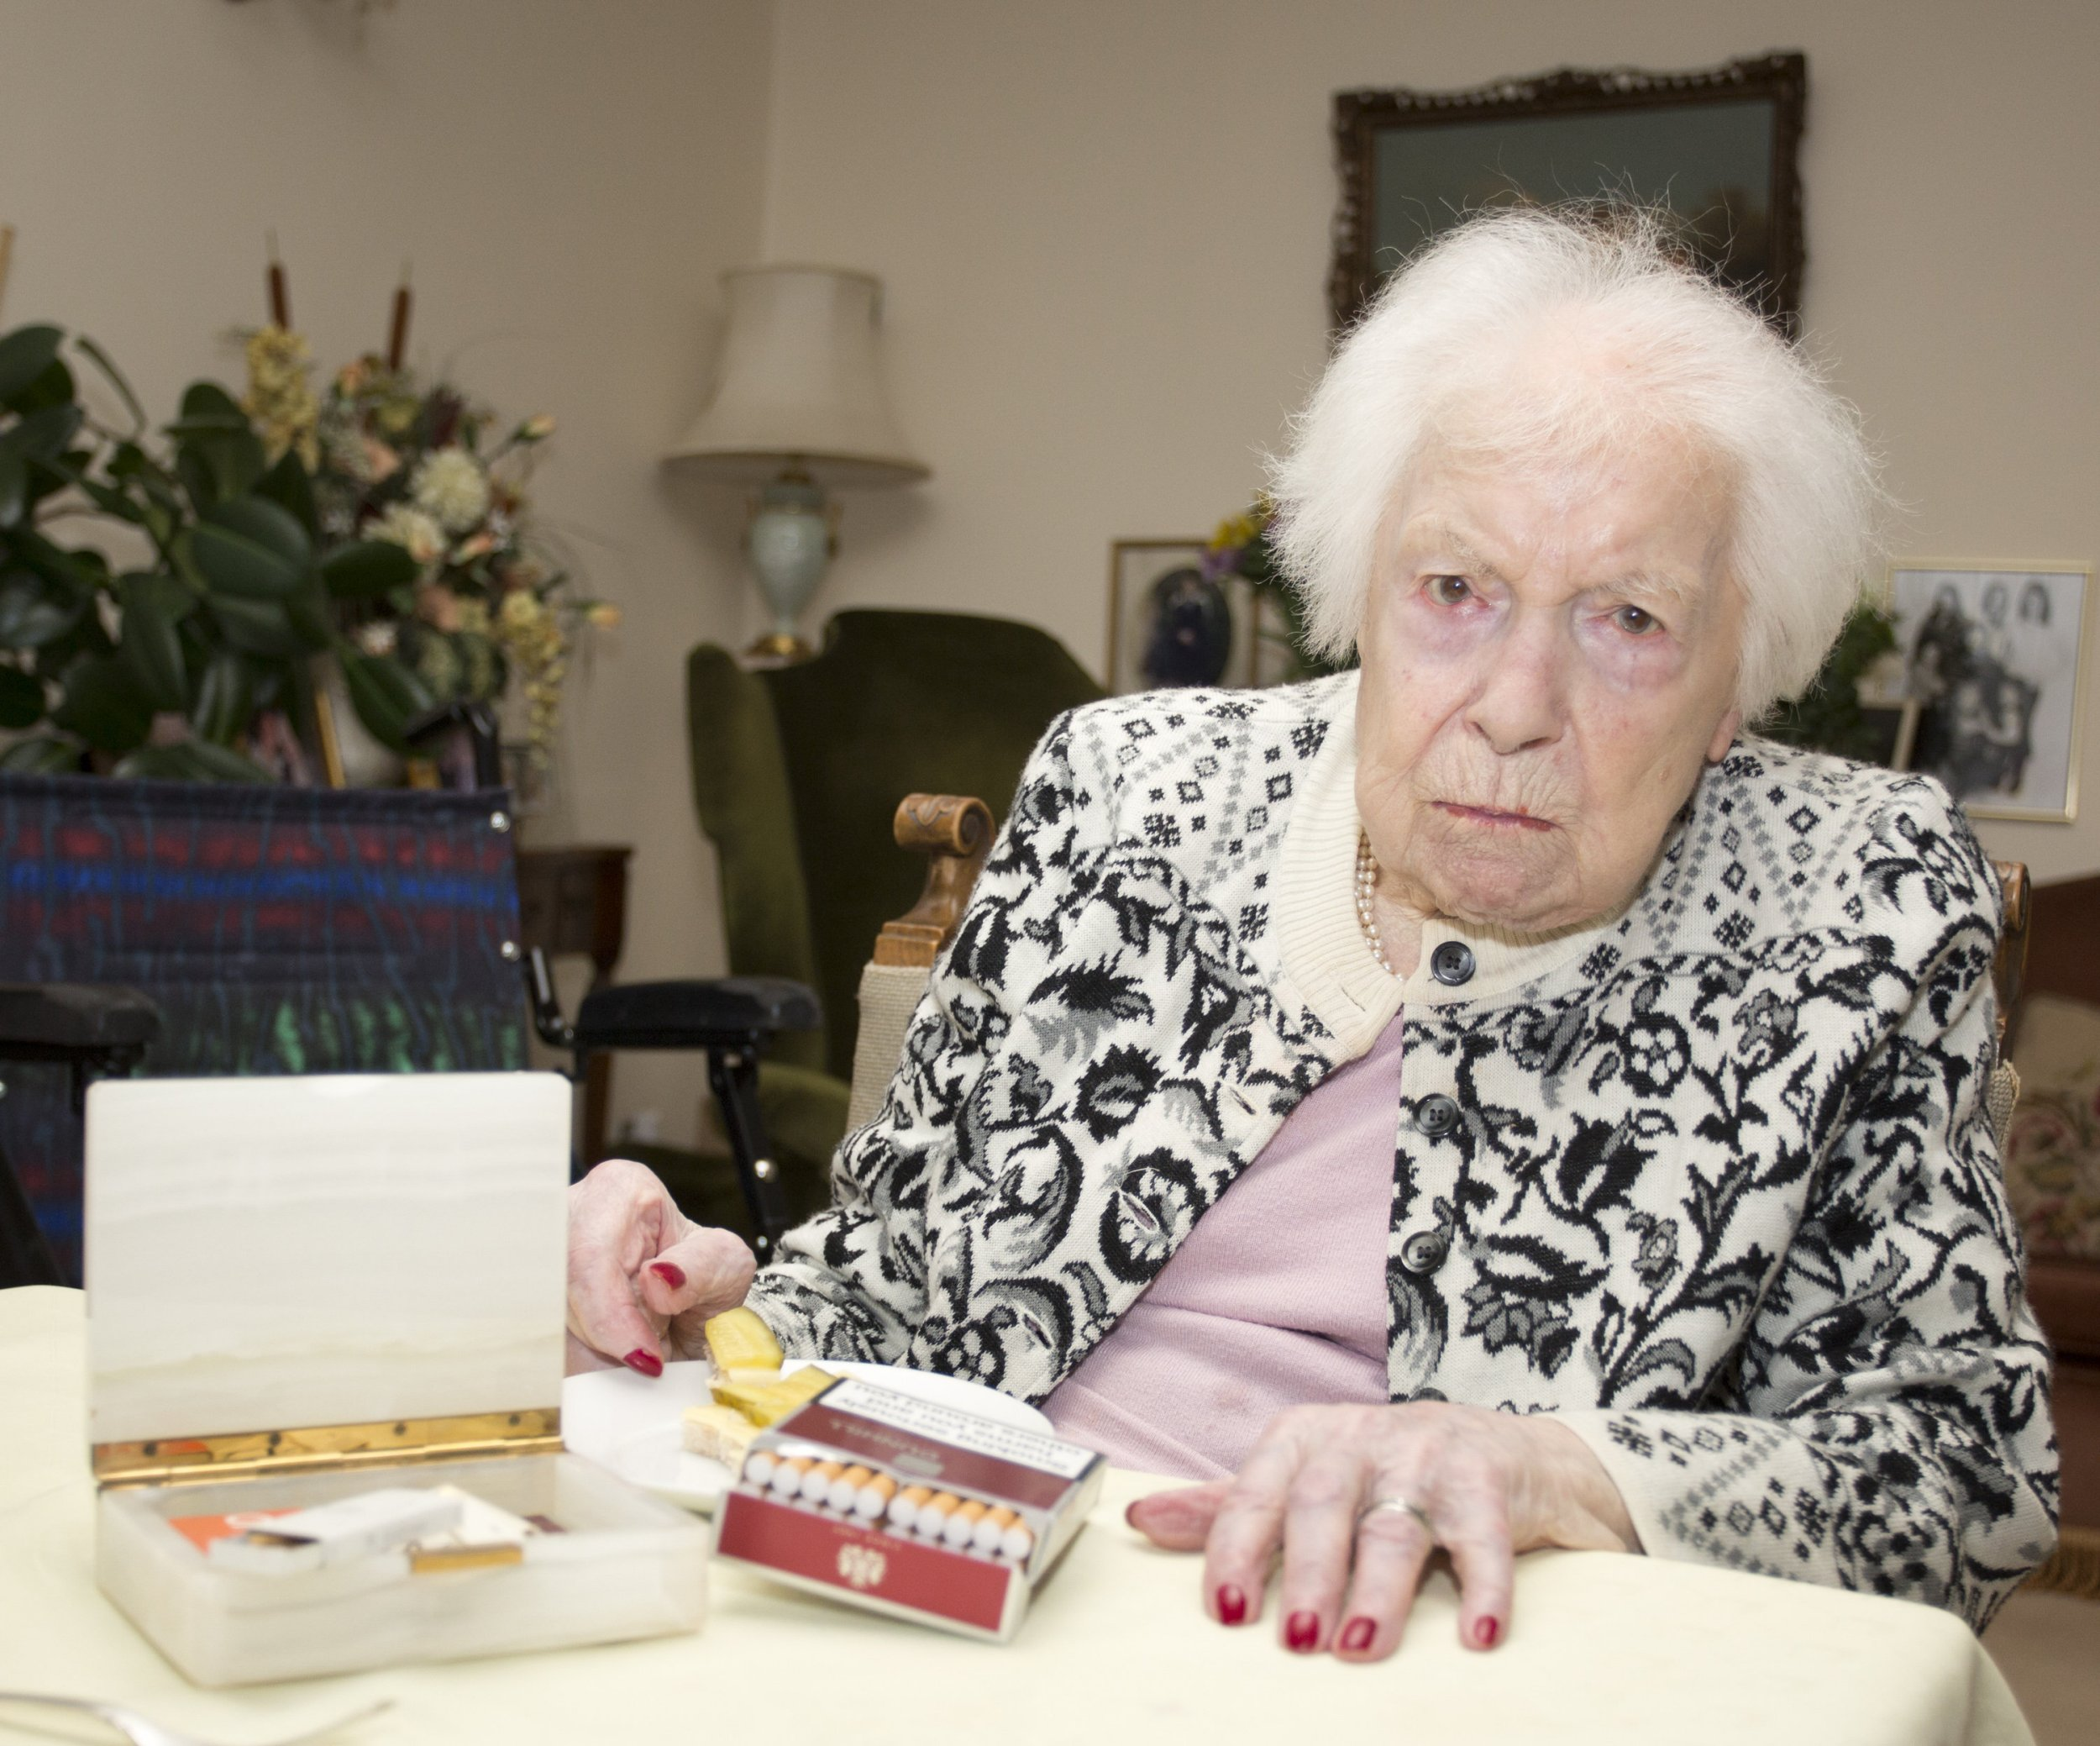 "Great grandmother Muriel Froomberg, 107, likes to enjoy a bottle of whisky once a week mixed with ginger ale at her home in St John's Wood, north London. She stopped smoking at the age of 102 because she wanted to see her great-great grandchildren grow. See SWNS story SWFAGS: A woman who turned 107 says her secret to long life is giving up smoking aged 102 - but still has a secret stash of 800 fags in her room. Muriel Froomberg quit ciggies five years ago so she could ""live a long life"" and watch her great great grandchildren grow up. She packed in the fags at the tender age of 102 - after more than ninety years smoking around 40-a-day - and hasn't looked back. But canny great great granny Muriel has even got 800 cigarettes stashed in her bedroom that she's saving in case she might need them."